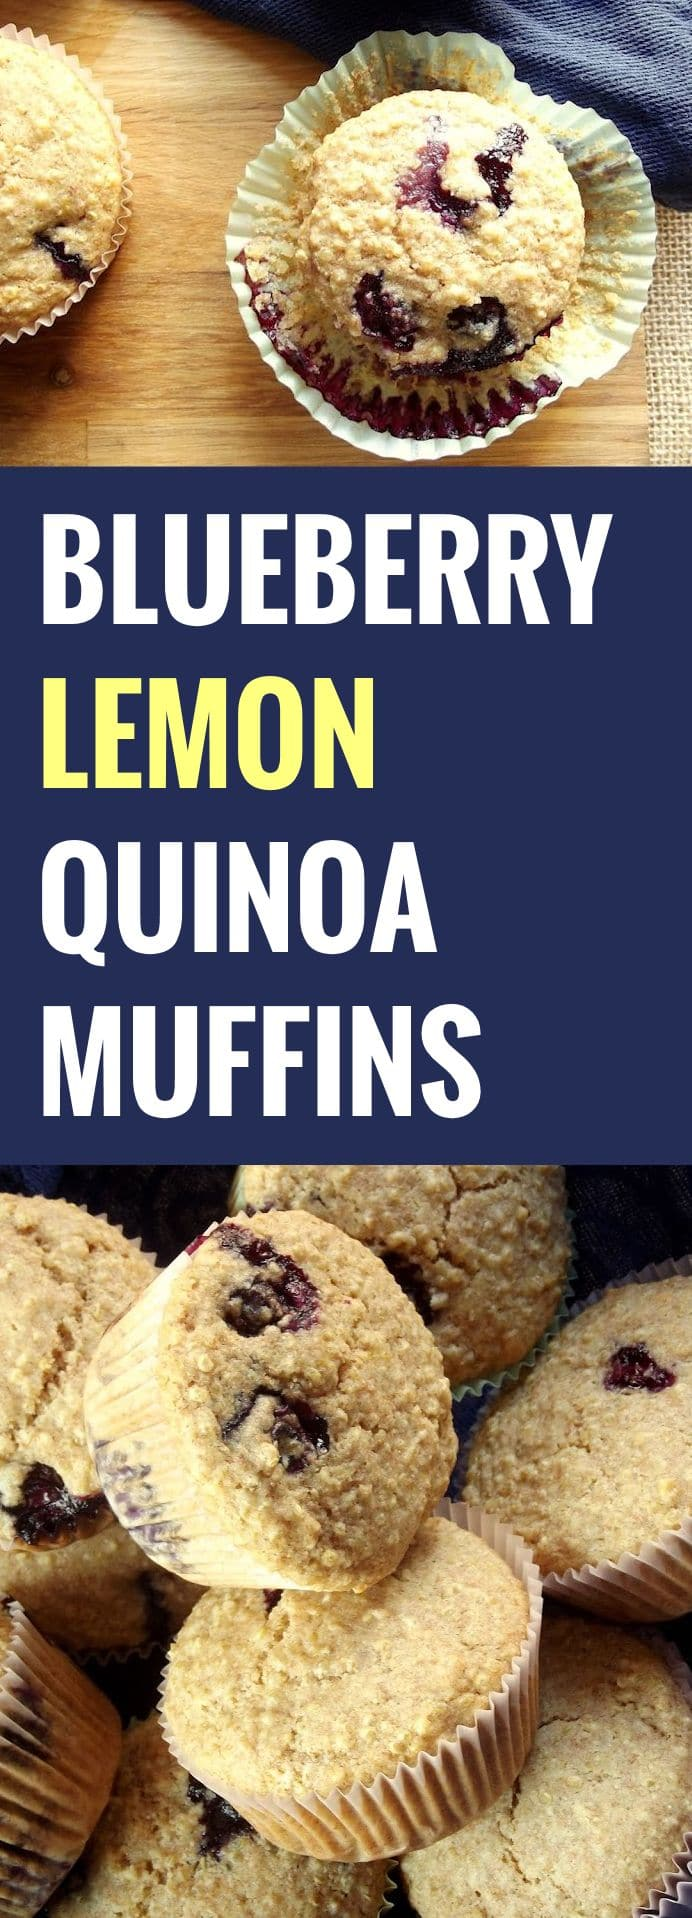 Blueberry Lemon Quinoa Muffins